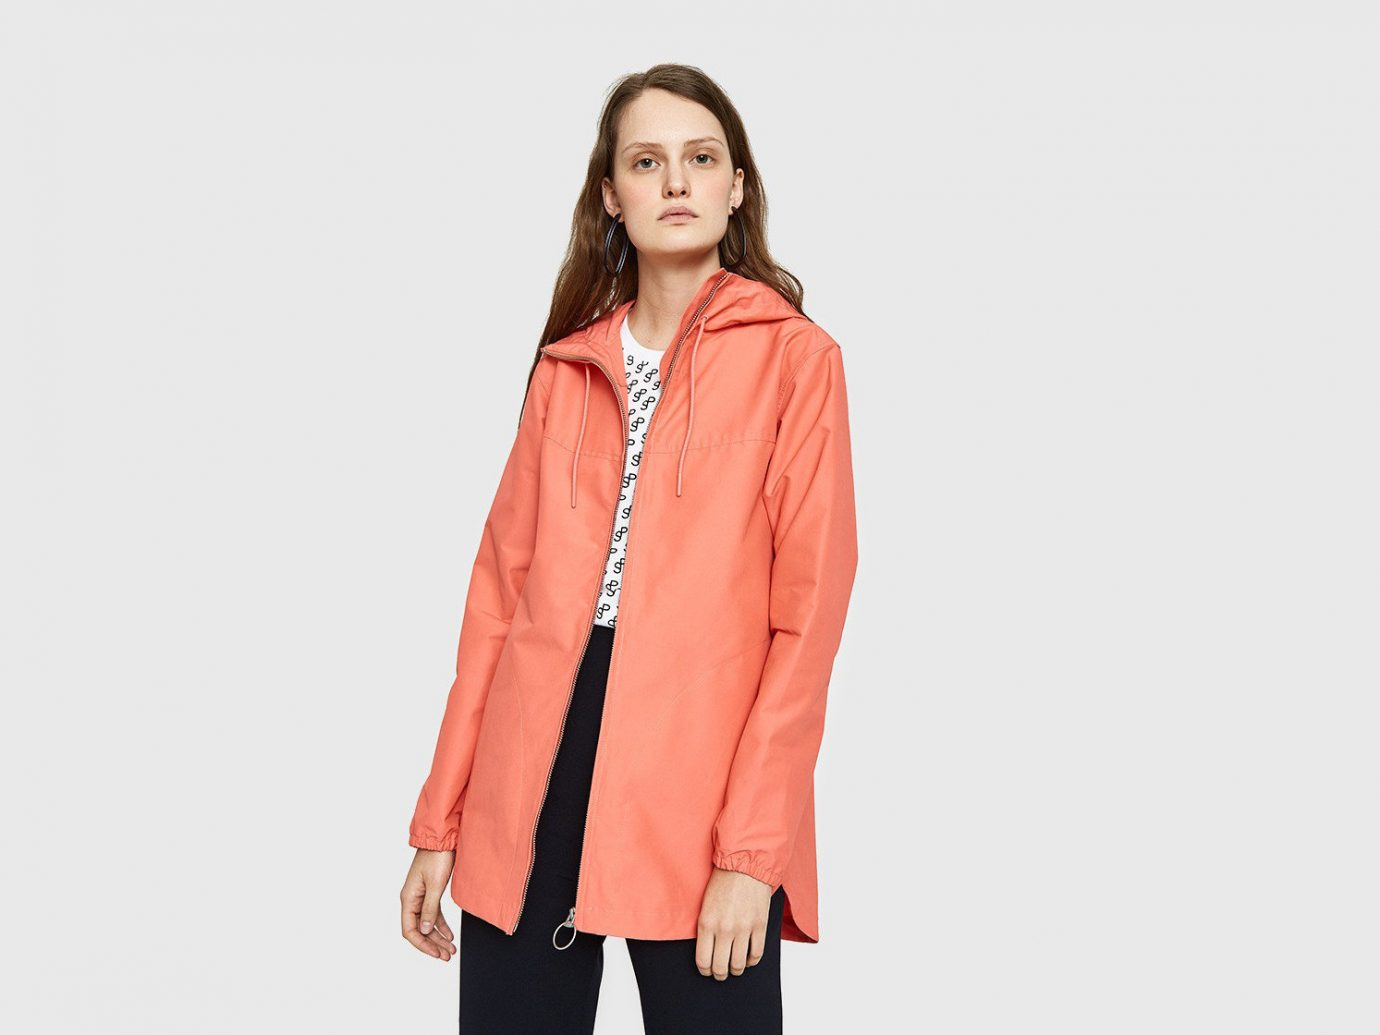 Packing Tips Spring Travel Style + Design Travel Shop clothing suit wearing posing jacket coat shoulder outerwear sleeve peach fashion model dressed neck hood